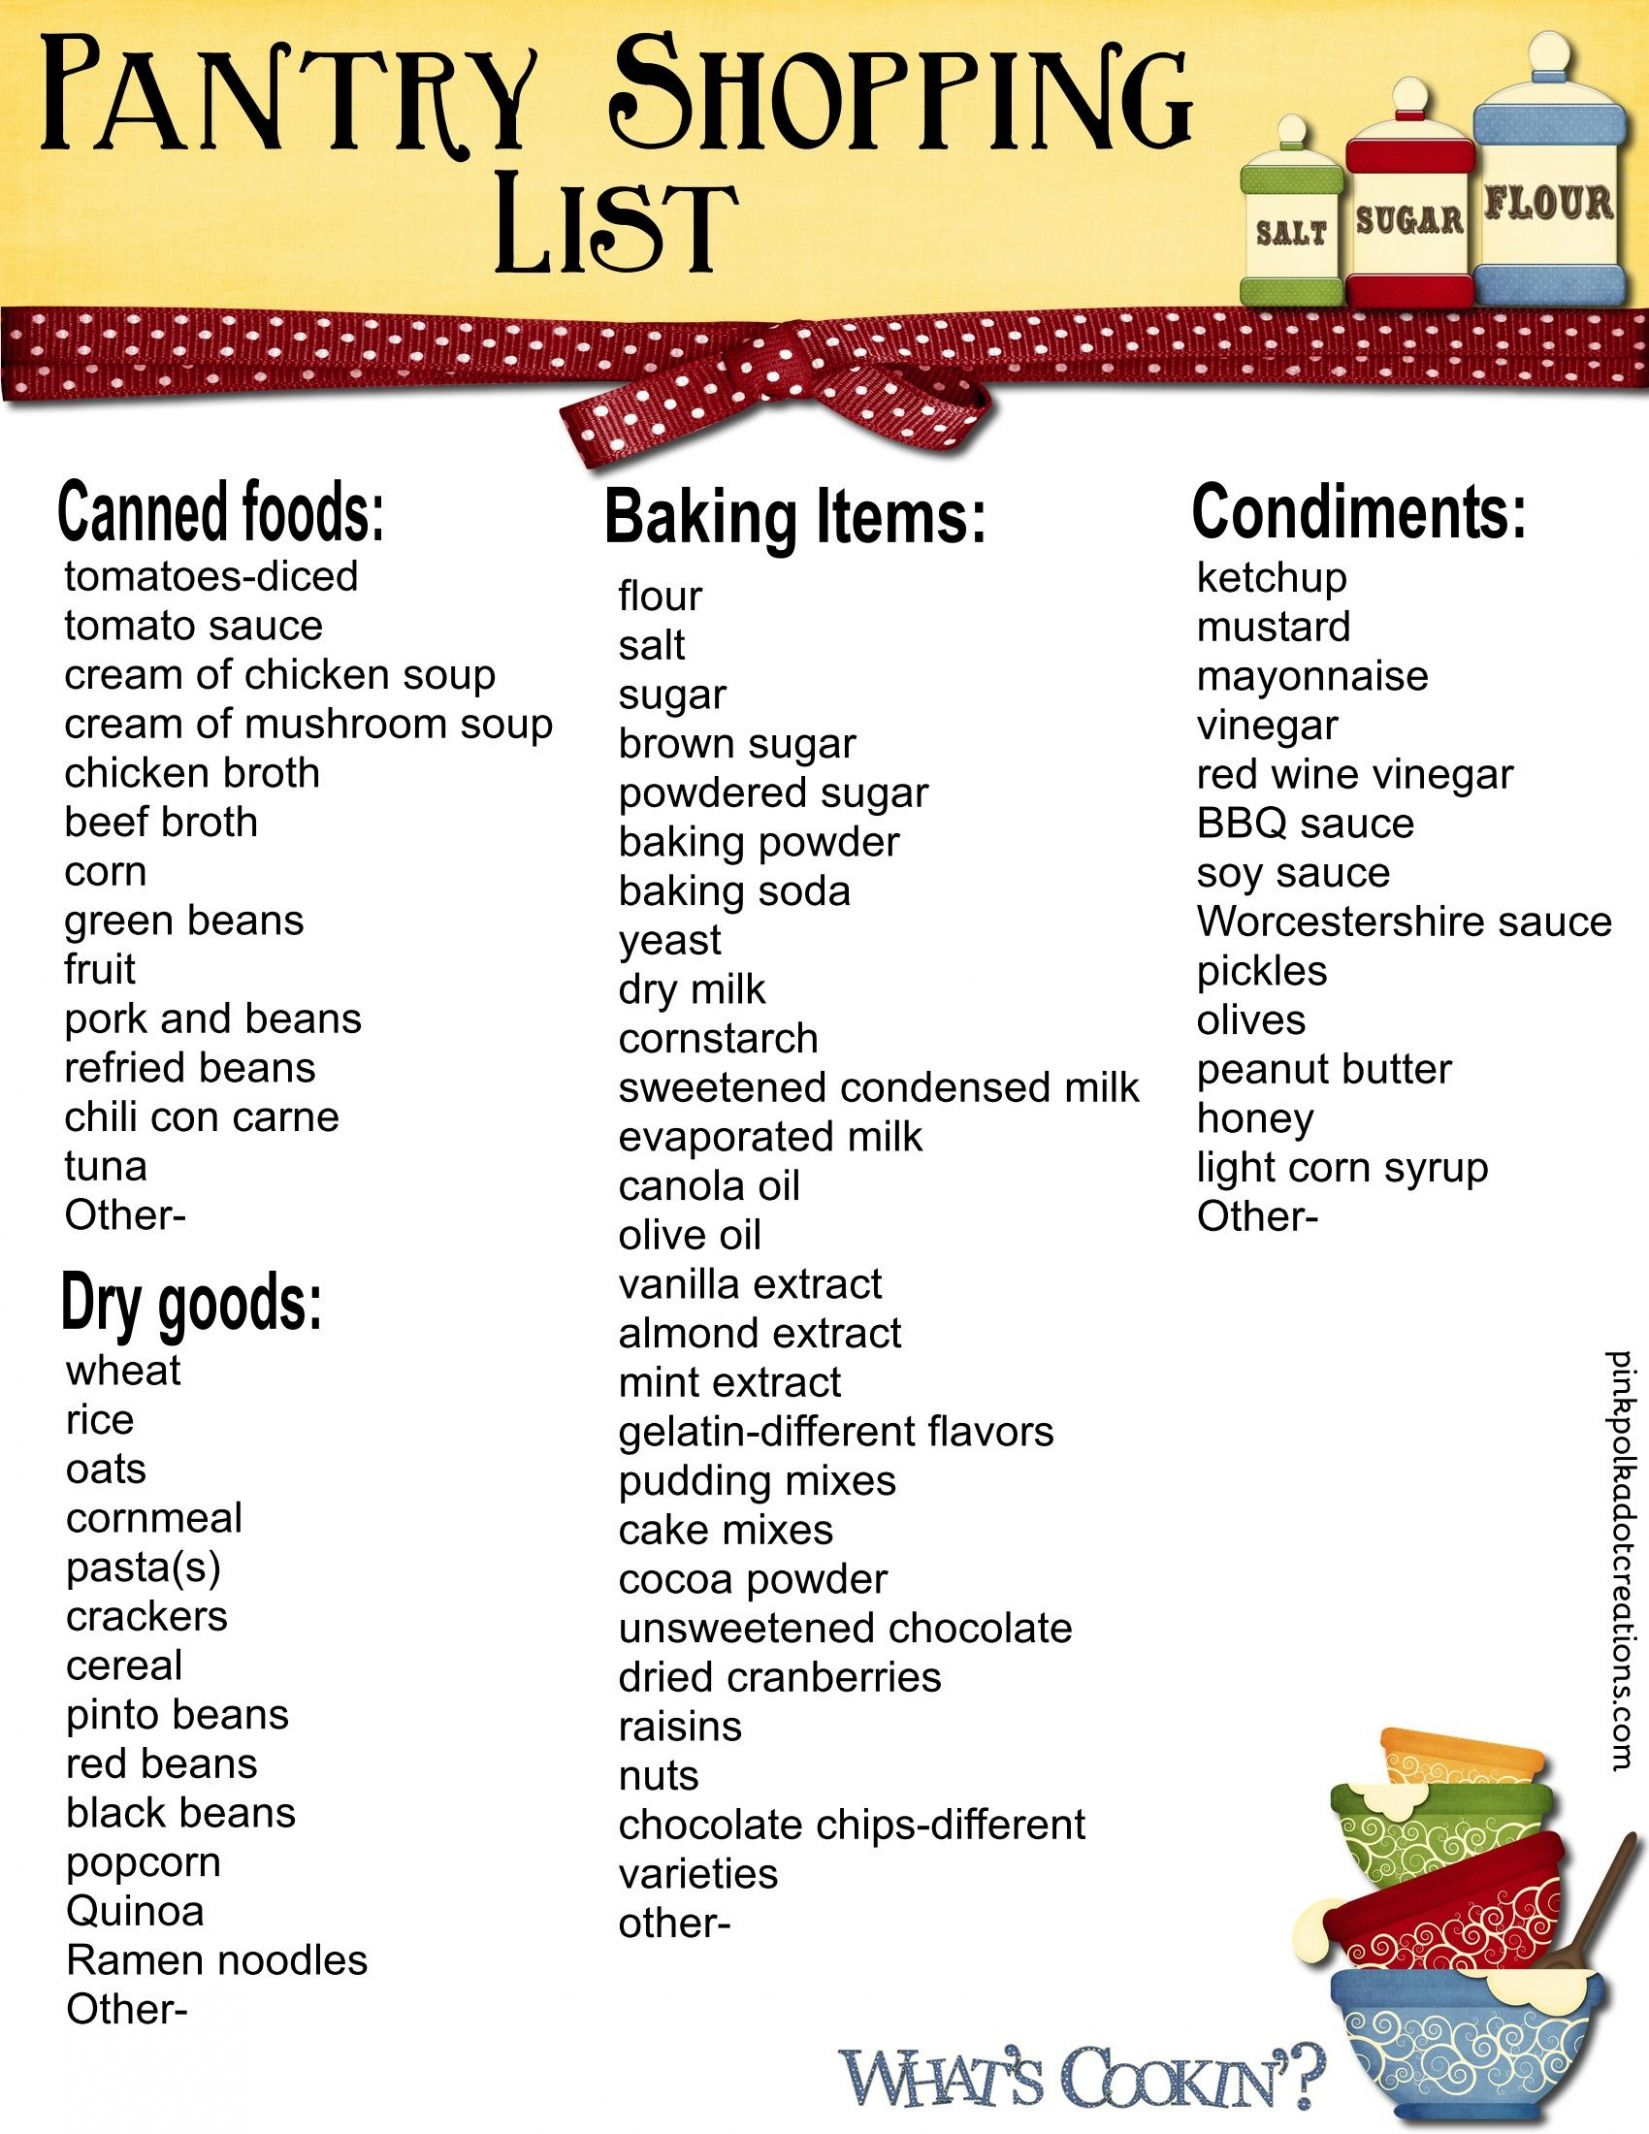 Pantry Shopping List   Pantry list, Pantry essentials, Pantry - Cooking Recipes List